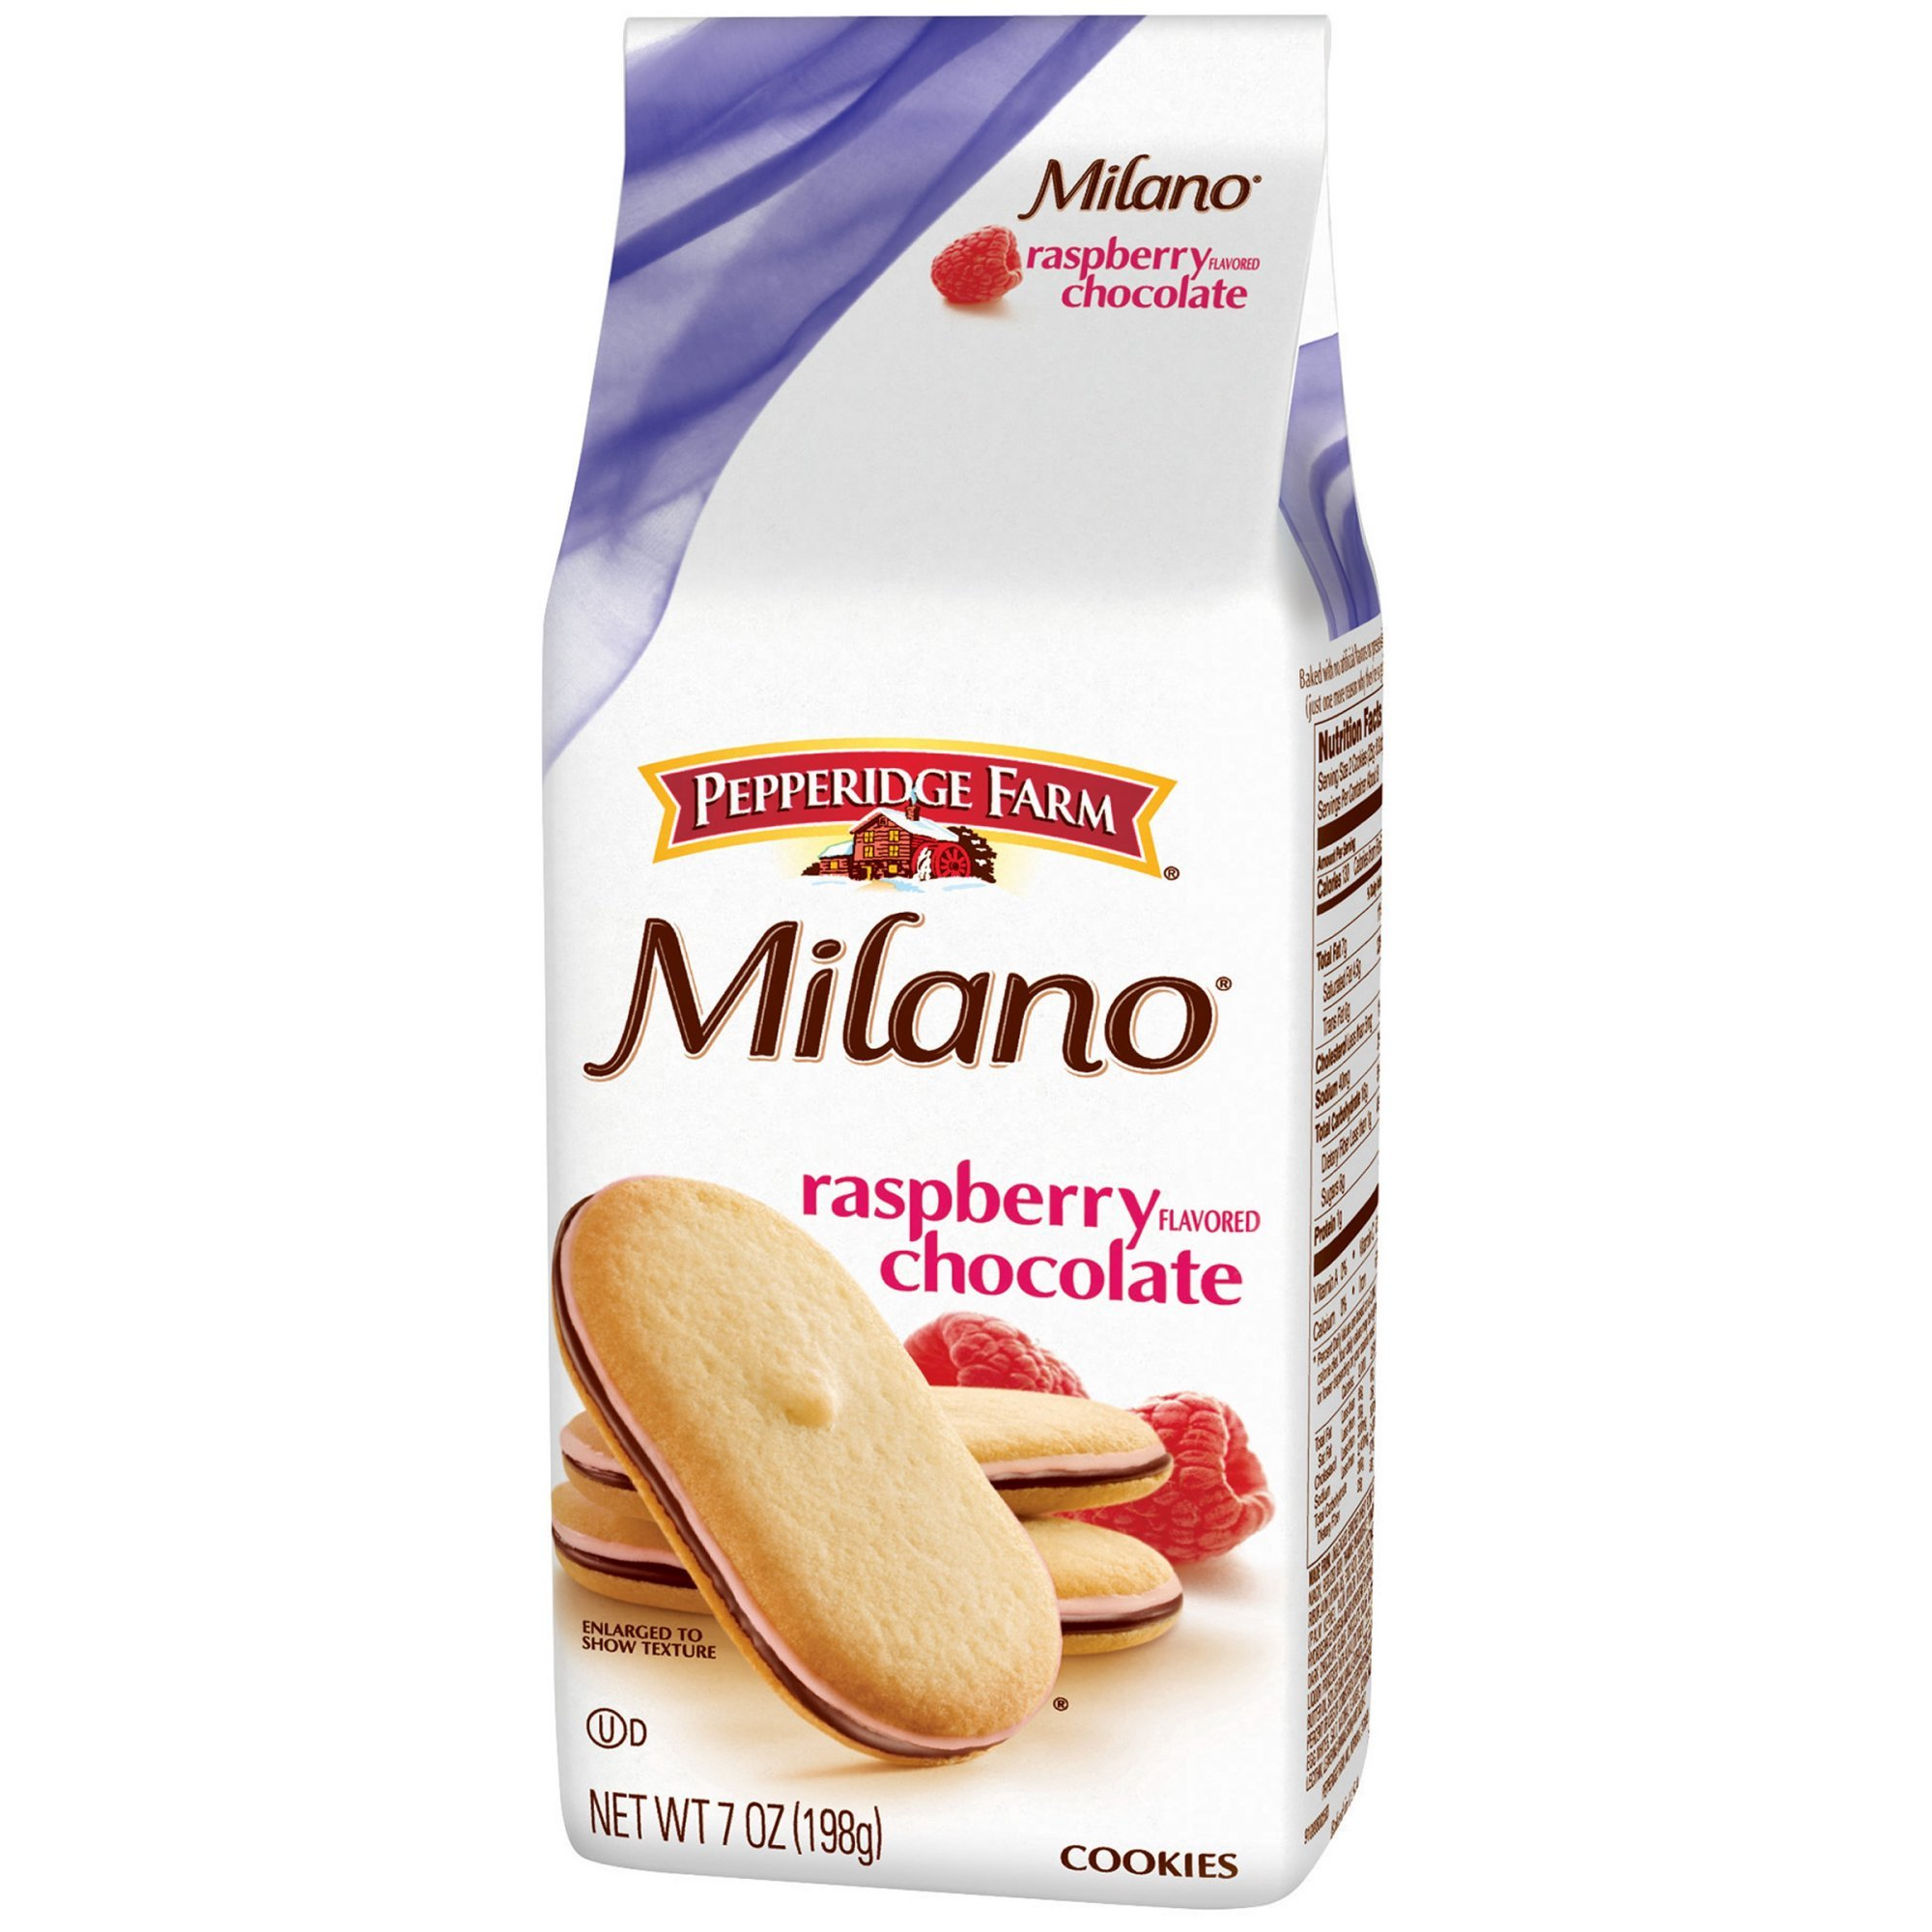 Pepperidge Farm Milano Raspberry Flavored Chocolate Cookies 7 oz (Pack of 3)